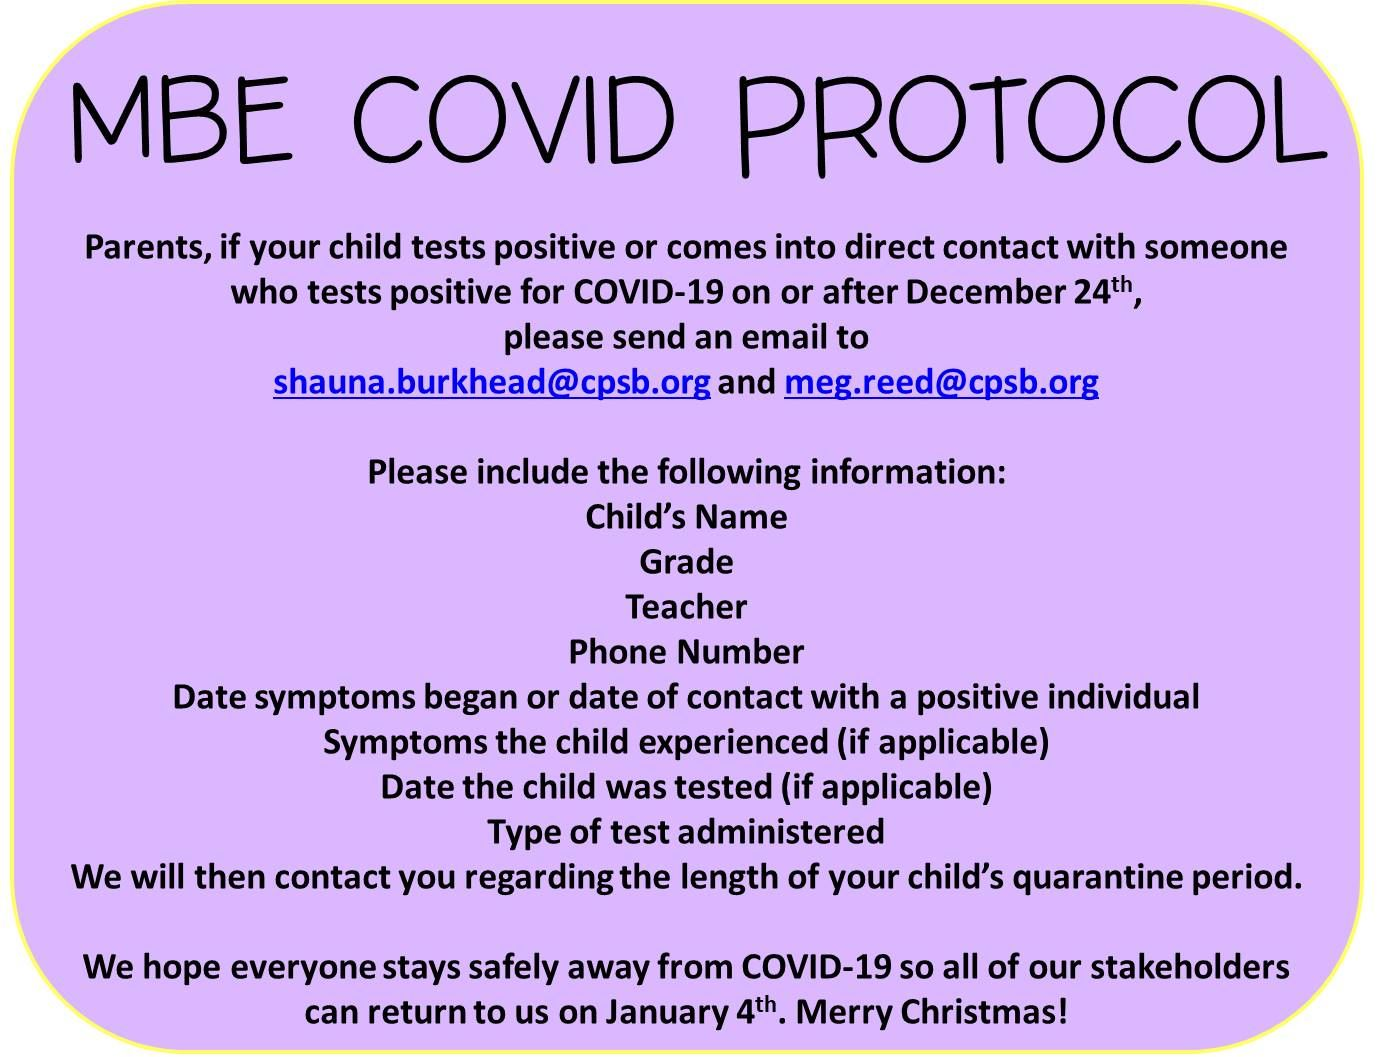 MBE COVID PROTOCOL